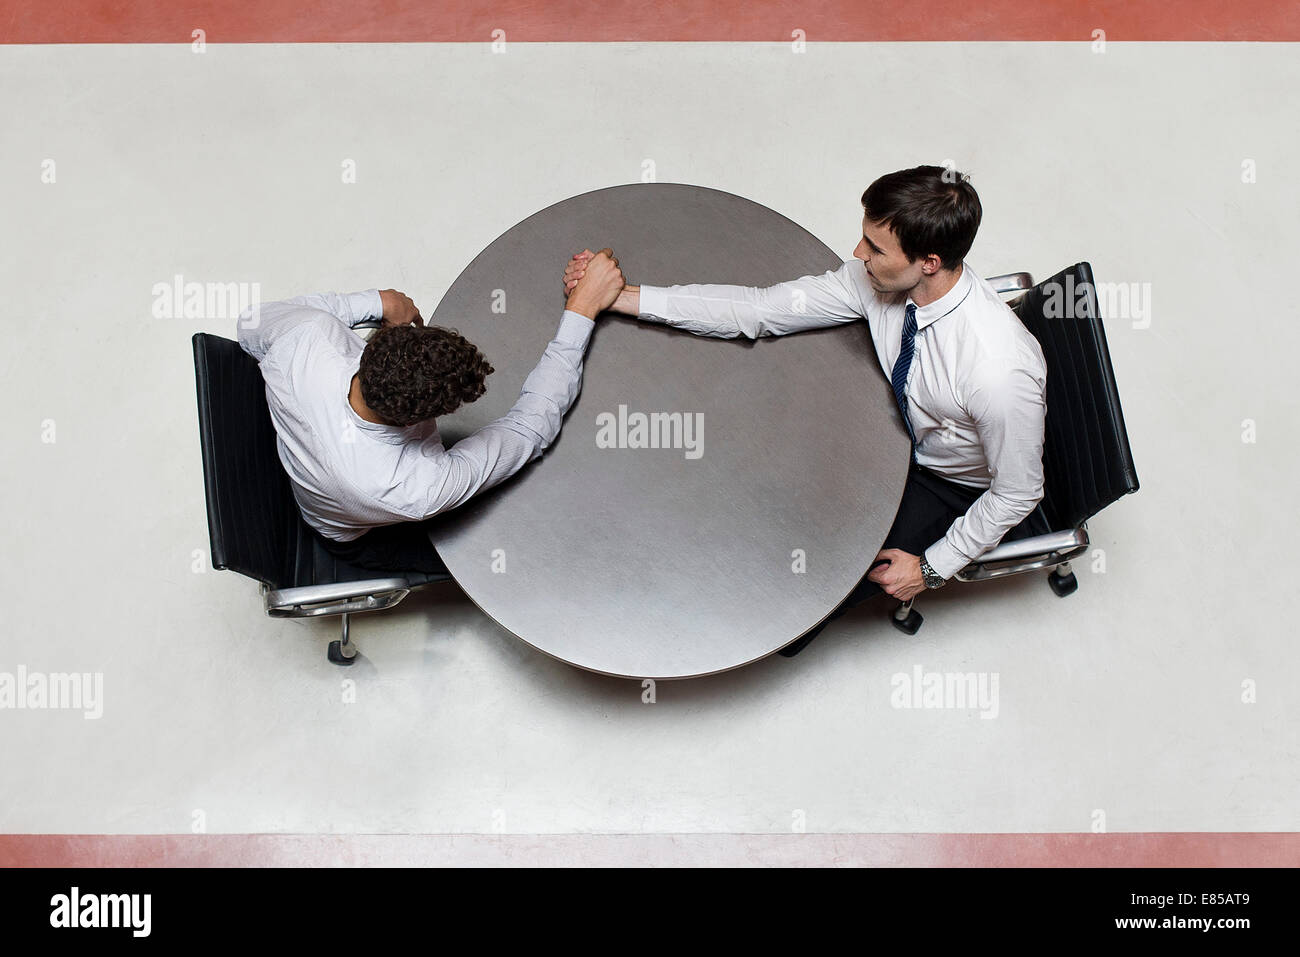 Businessman defeats colleague at arm wrestling match - Stock Image